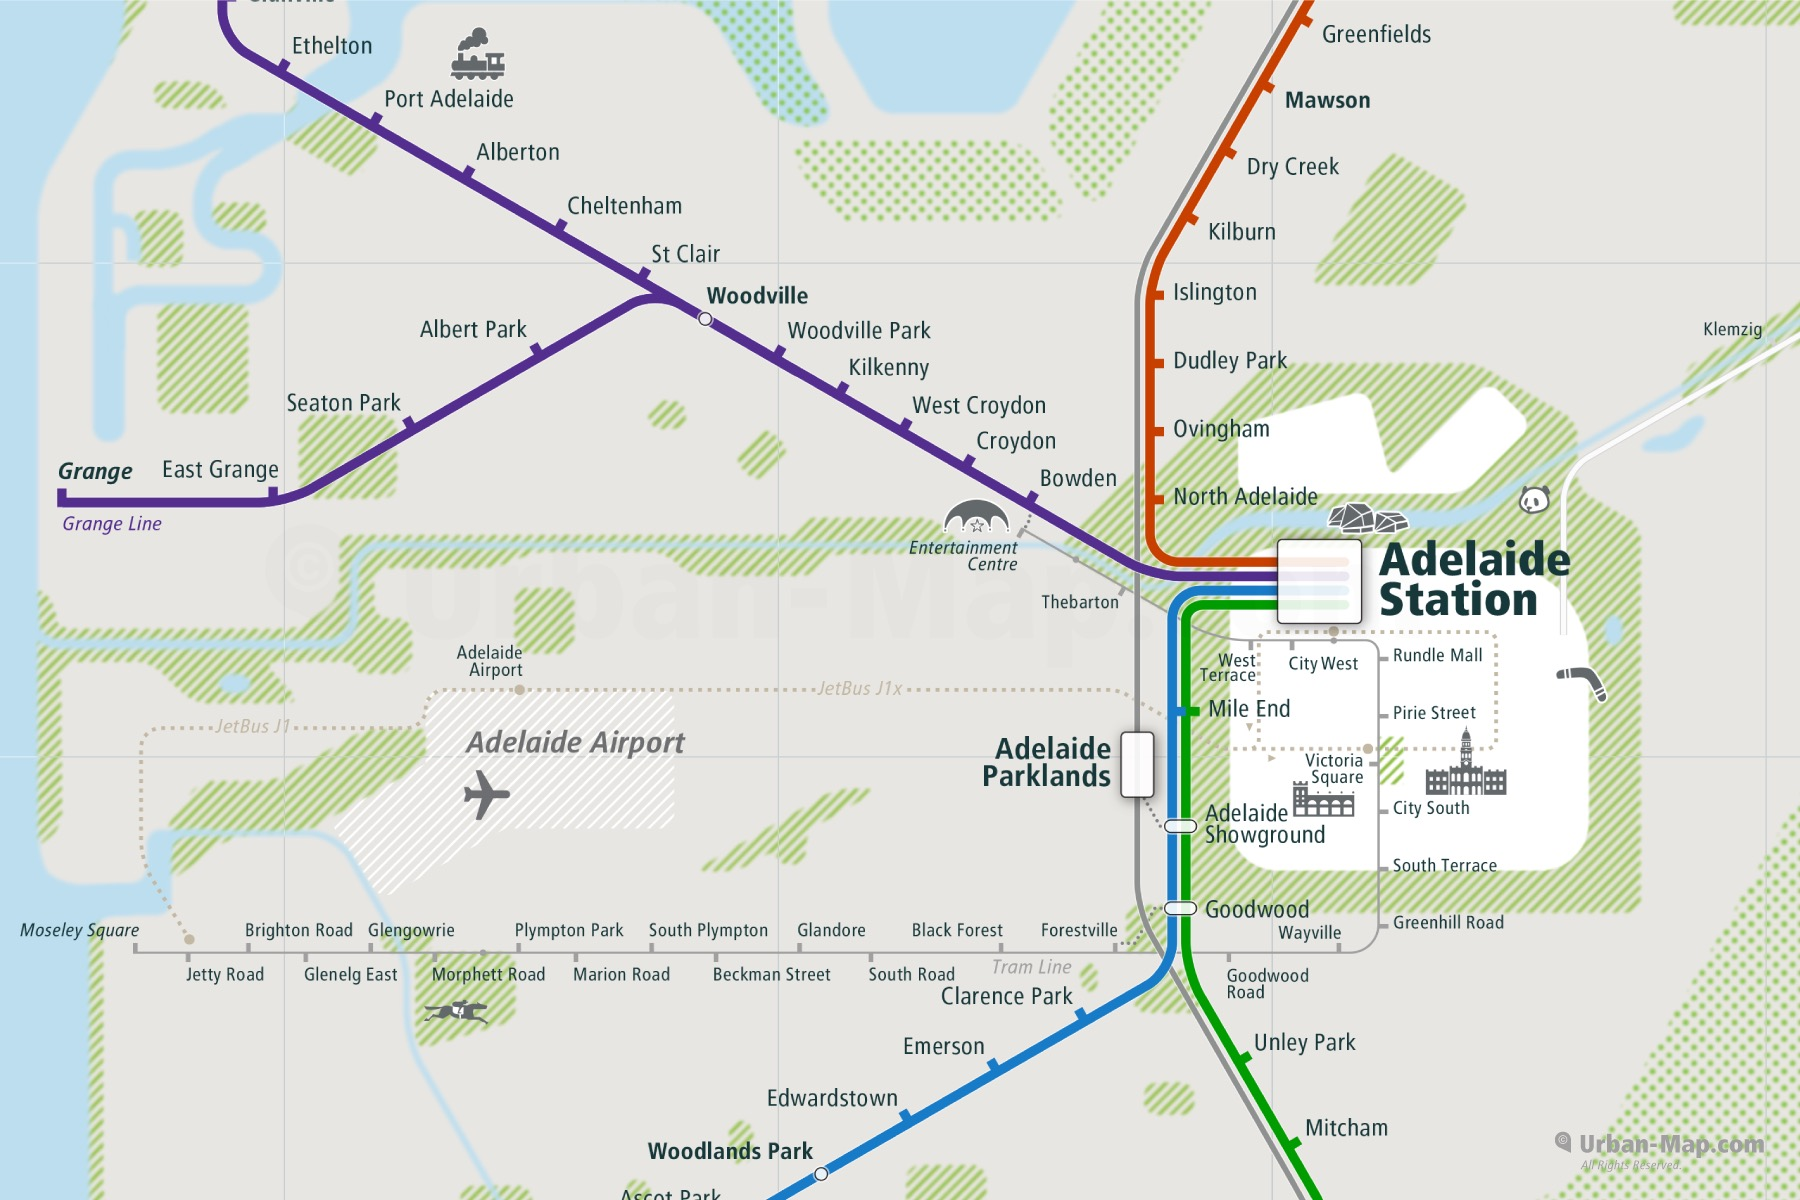 Adelaide rail map a smart city map even offline download now special clearly marked stations transfer hubs and interchanges for line transfer as well as station names and landmarks represented gumiabroncs Images